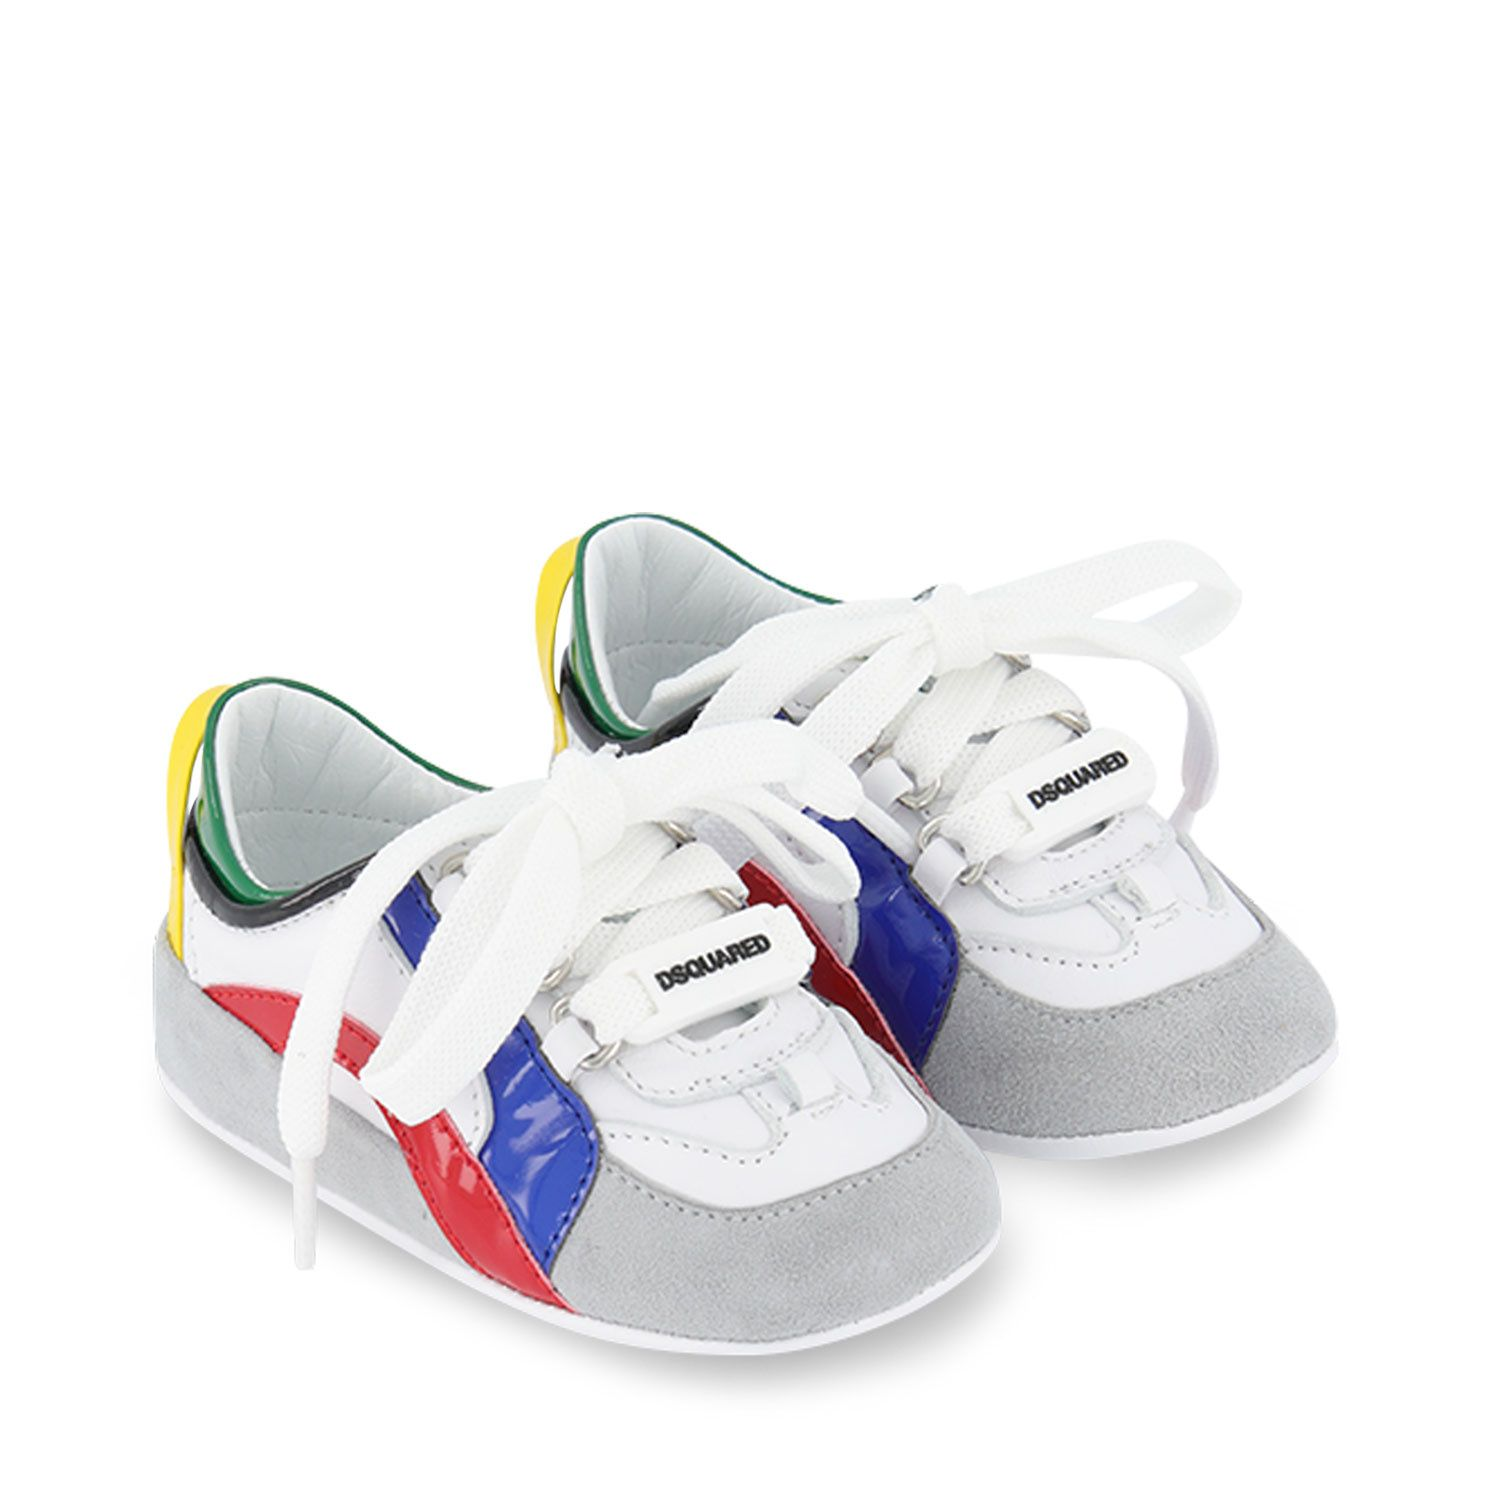 Picture of Dsquared2 66954 baby sneakers white